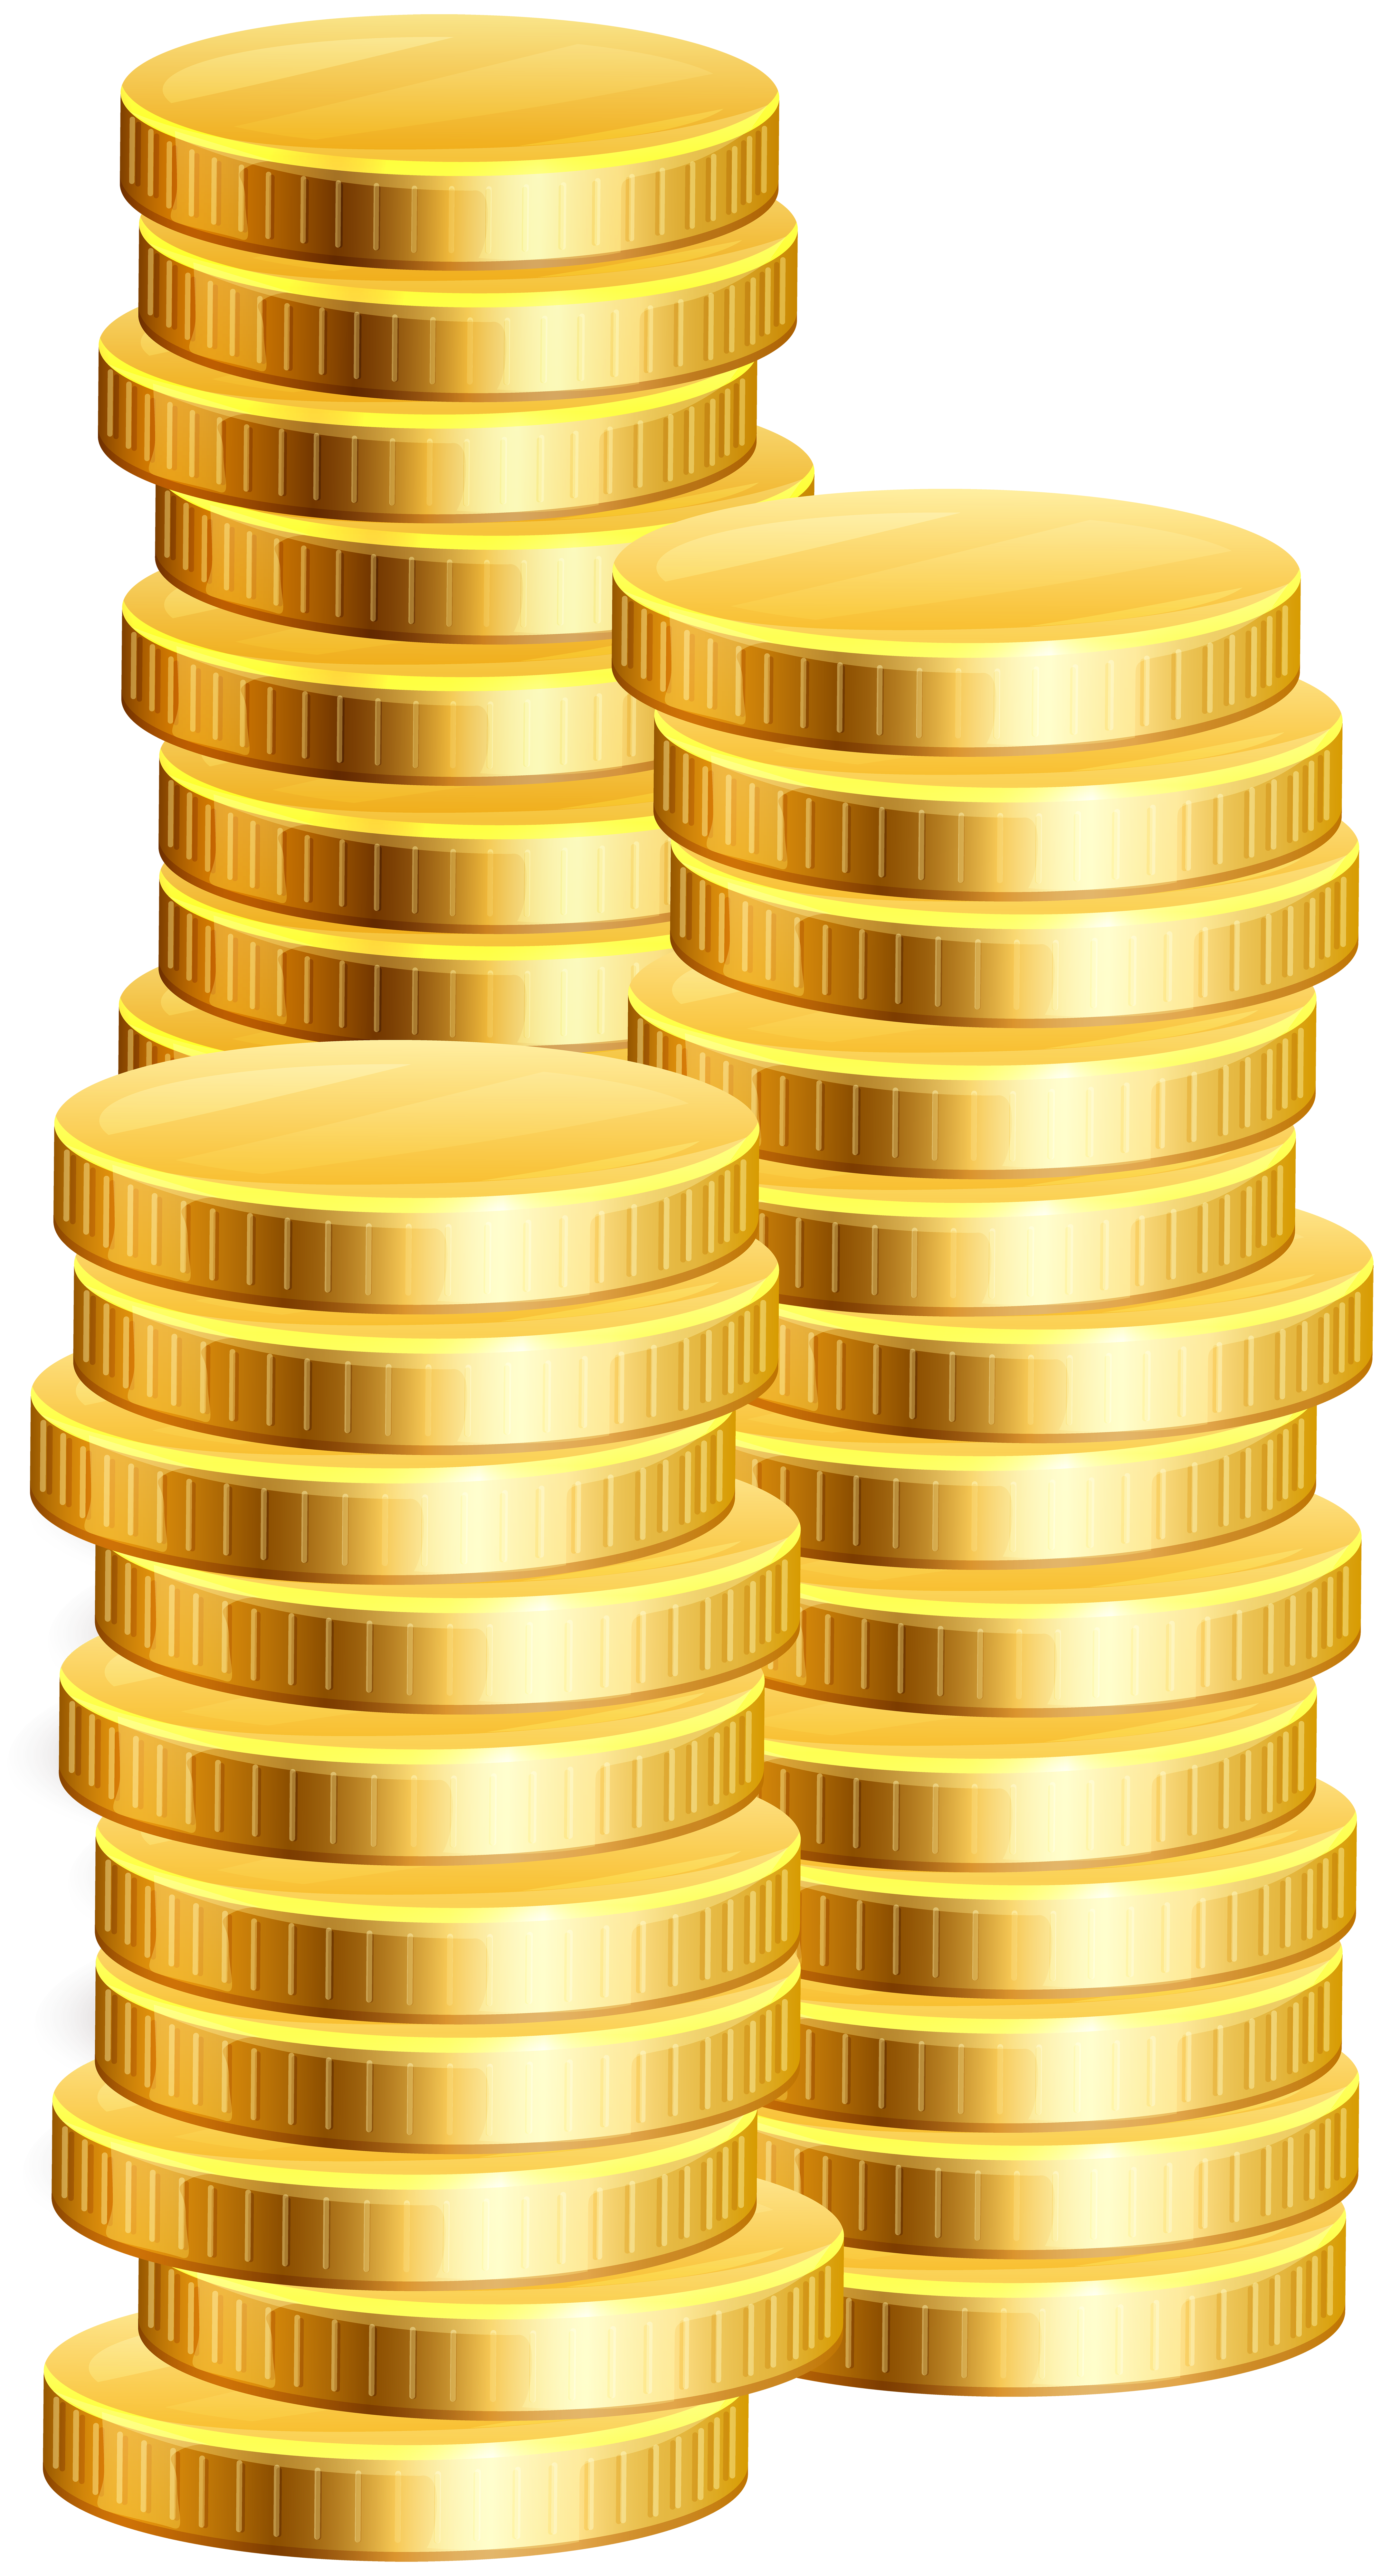 Clipart earth money. Coins png clip art